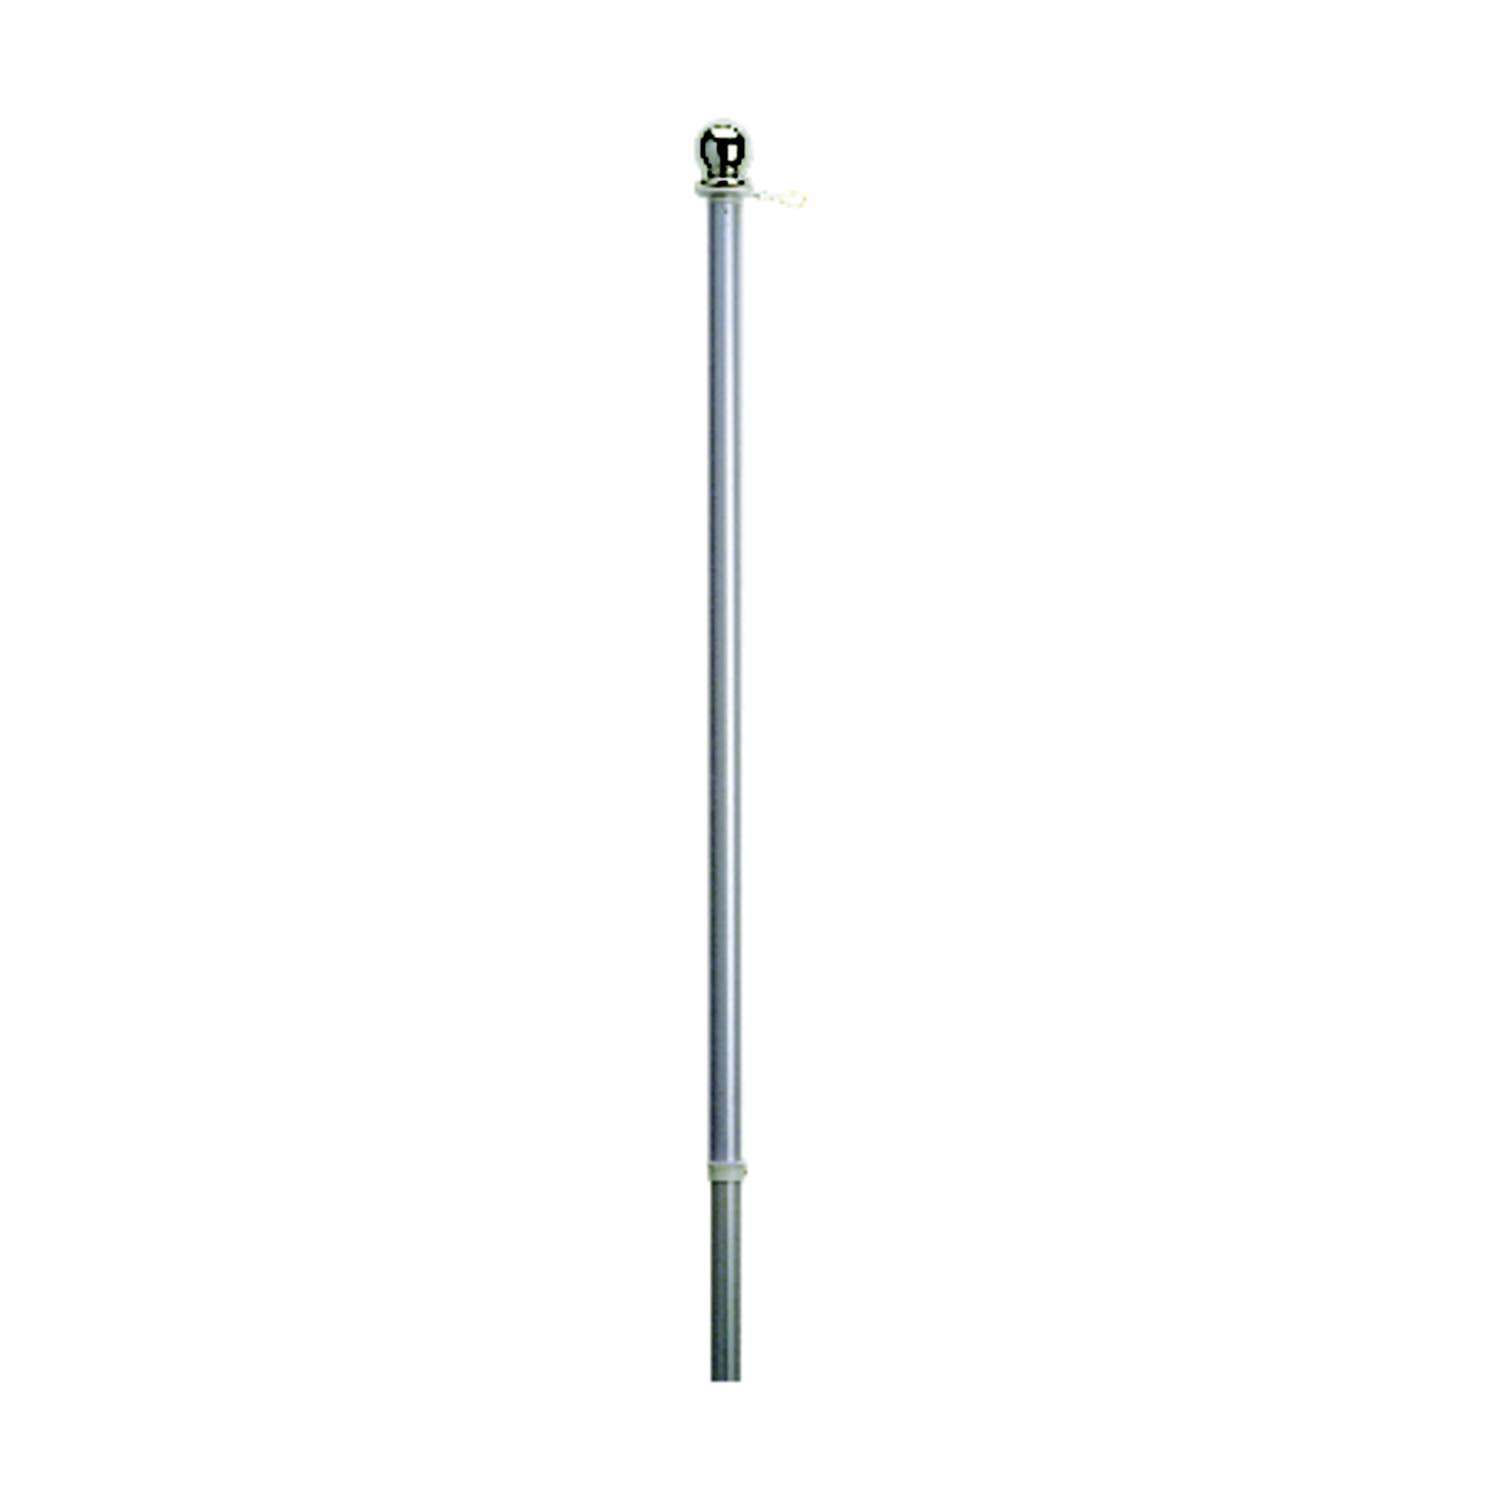 Valley Forge Brushed Aluminum Flag Pole - 5'